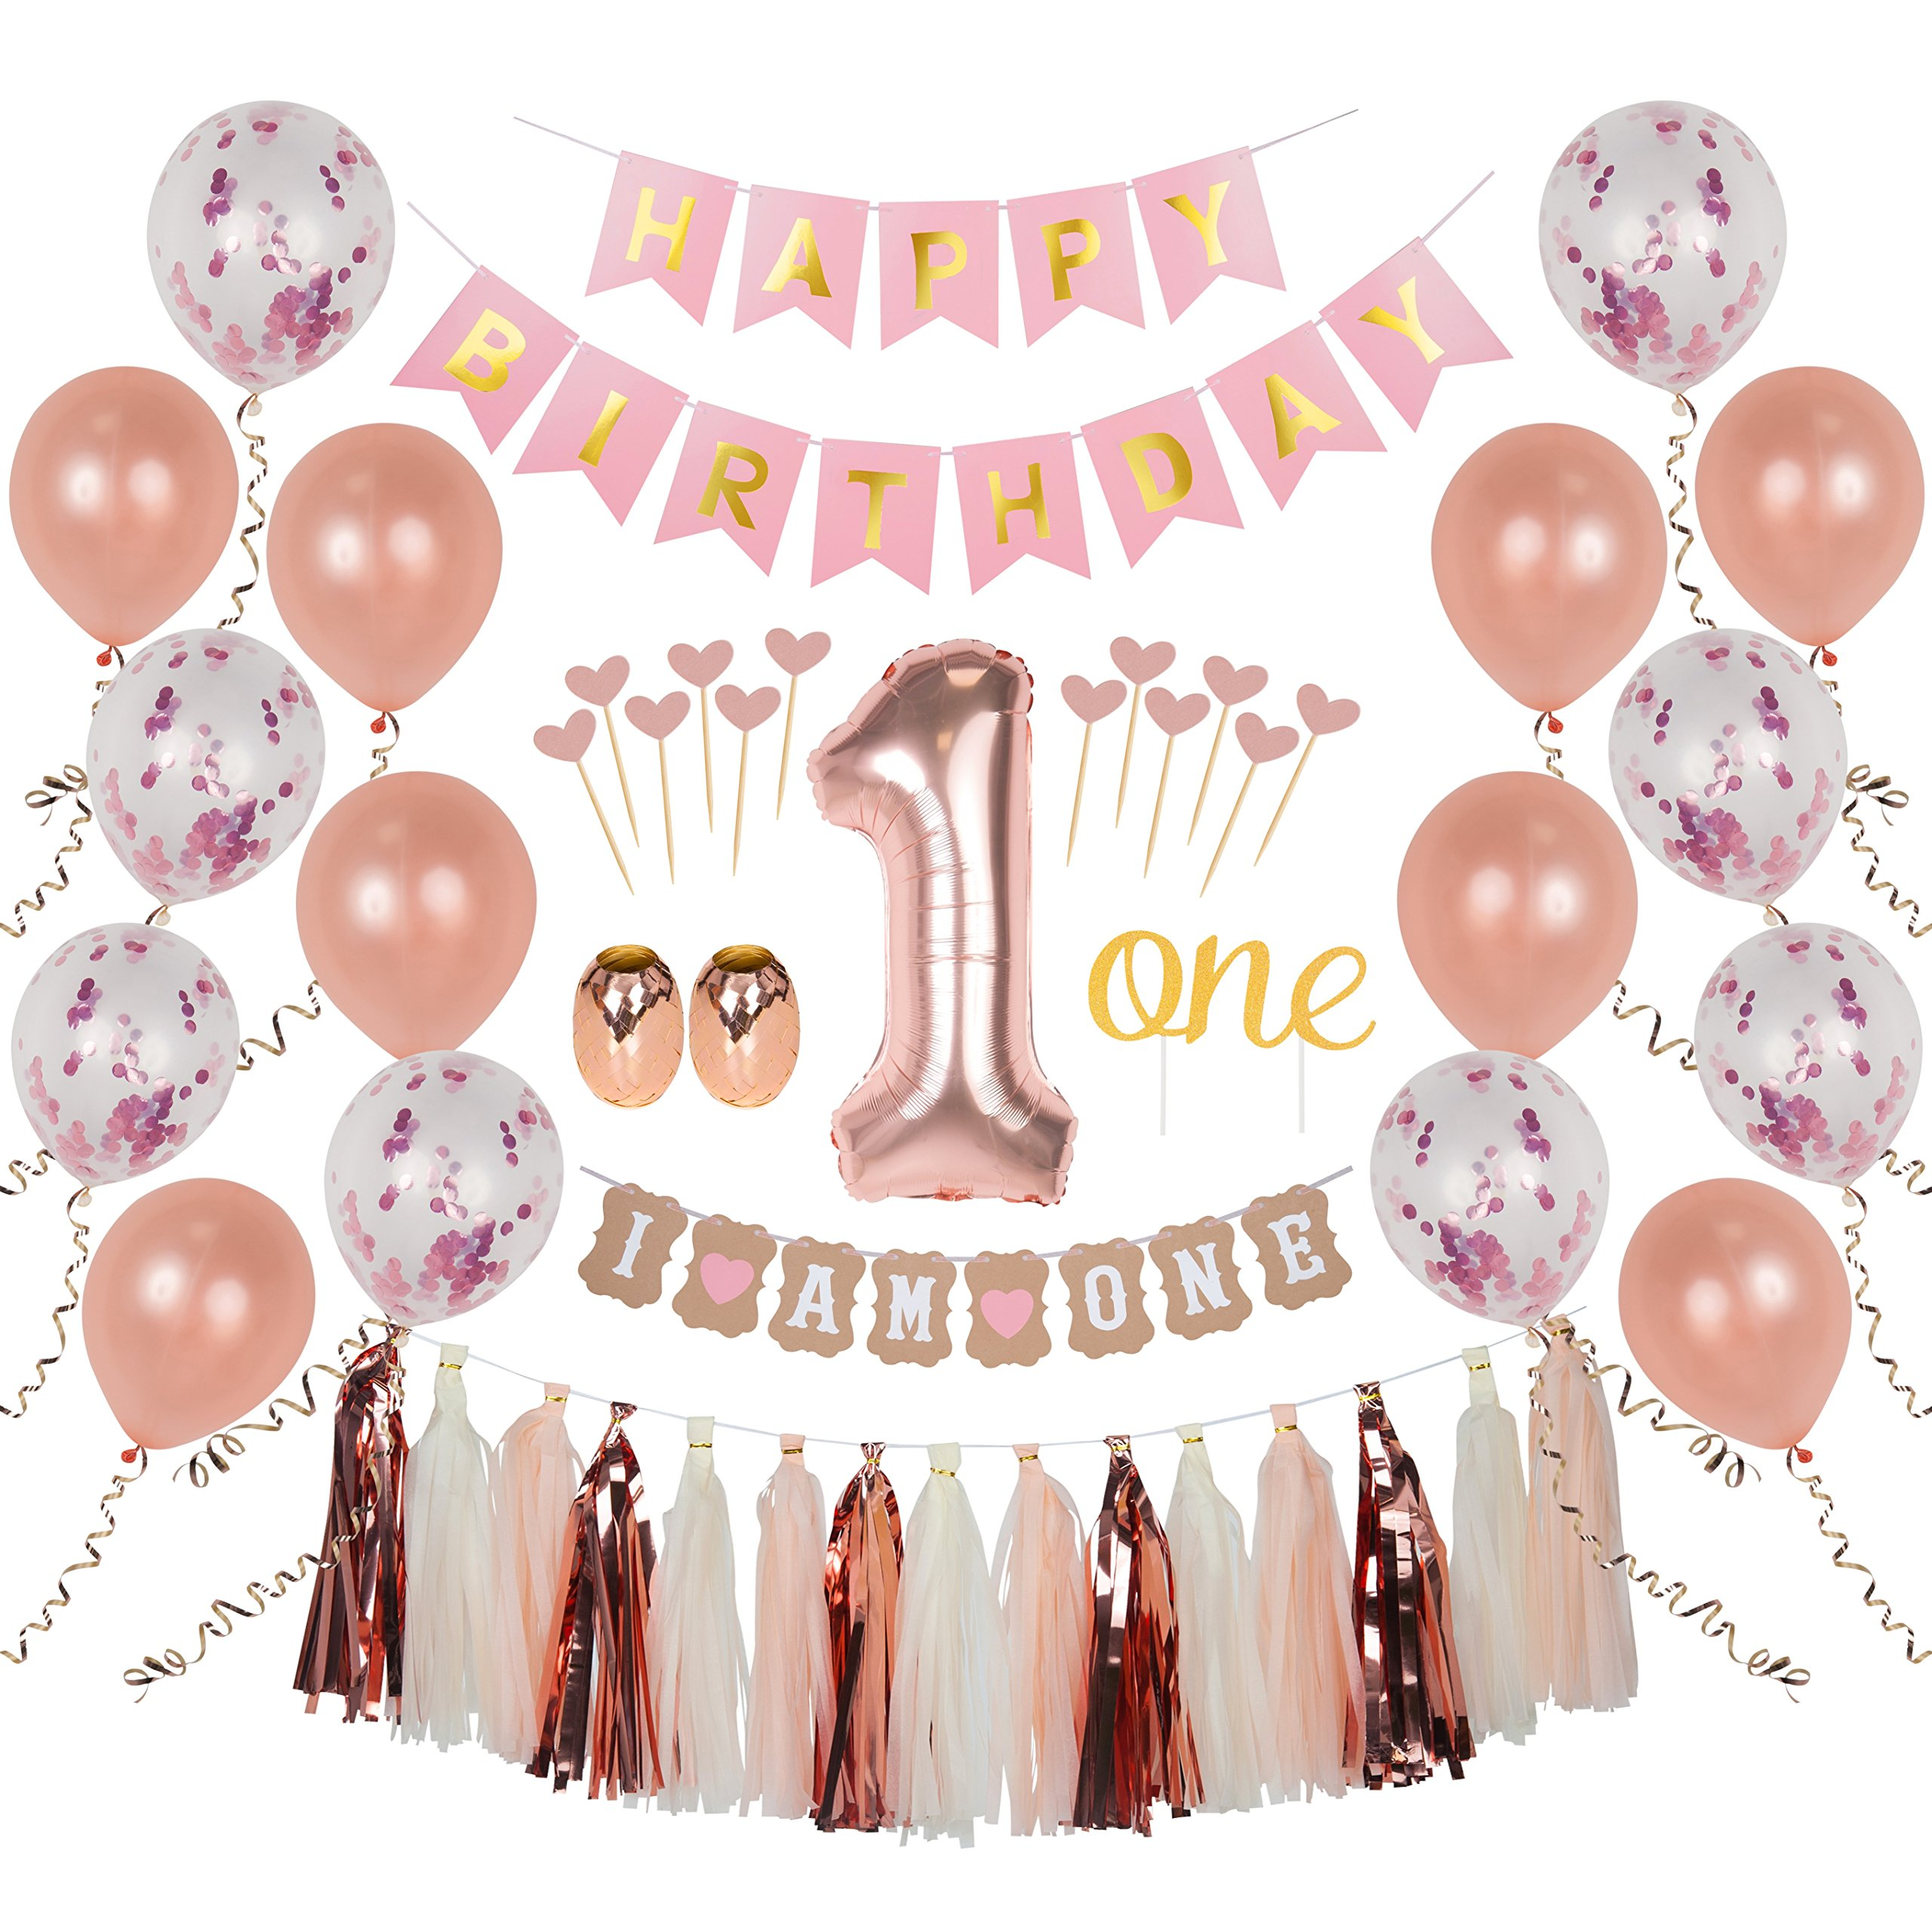 Ellia First Birthday Girl Decorations, 1st Smash Cake Fun Party Set, Rose Gold Pink Decor - ''One'' Topper, Confetti Balloons, Bday Bunting, ''I am One'' Banner, Tassels, Ribbon, Heart Sticks by Ellia